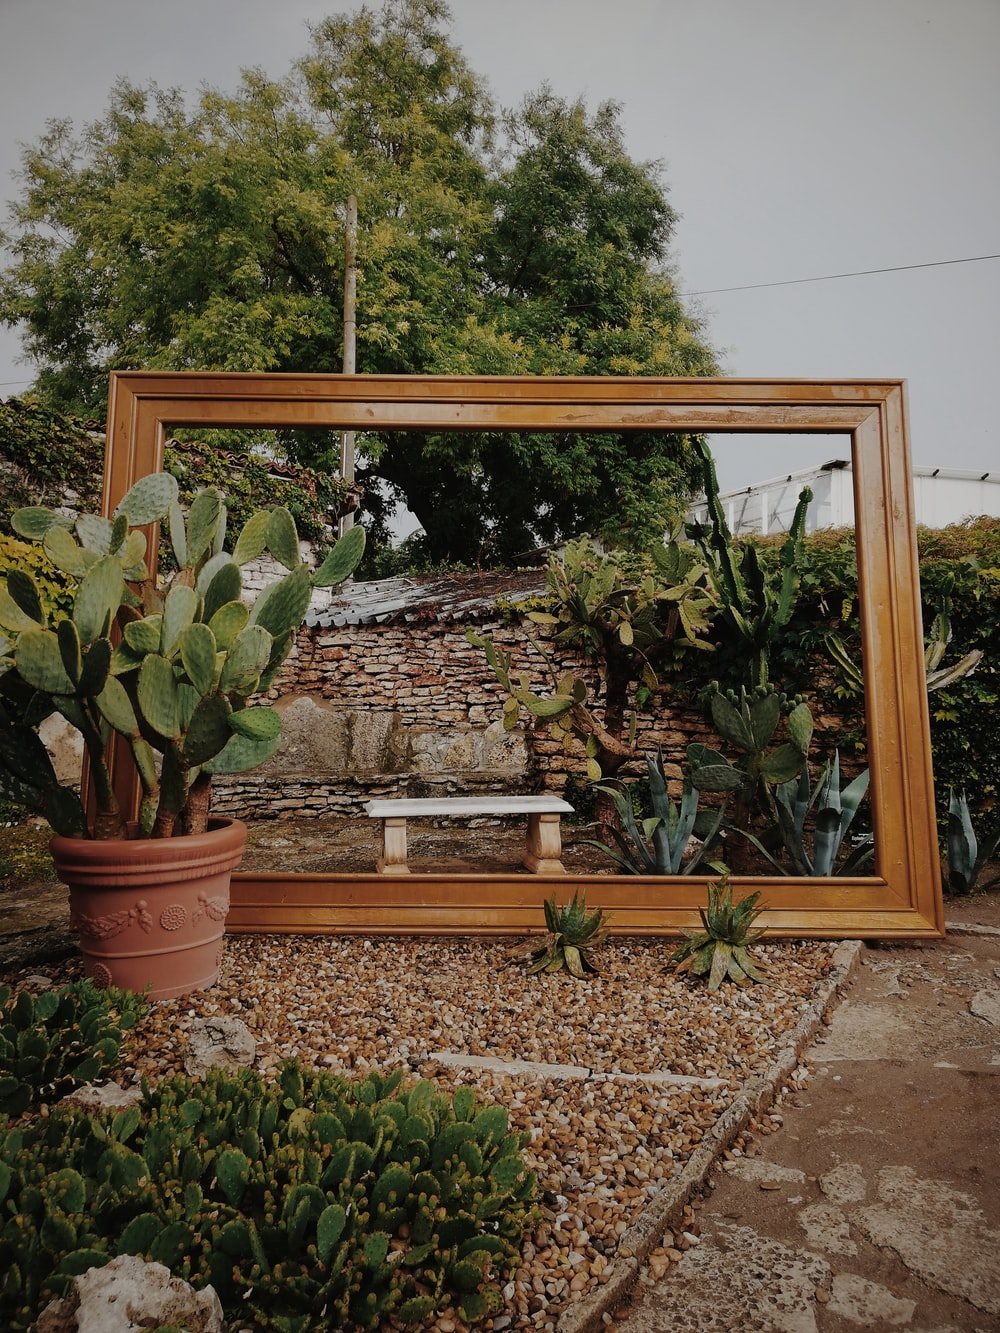 green potted plants on brown wooden window frame